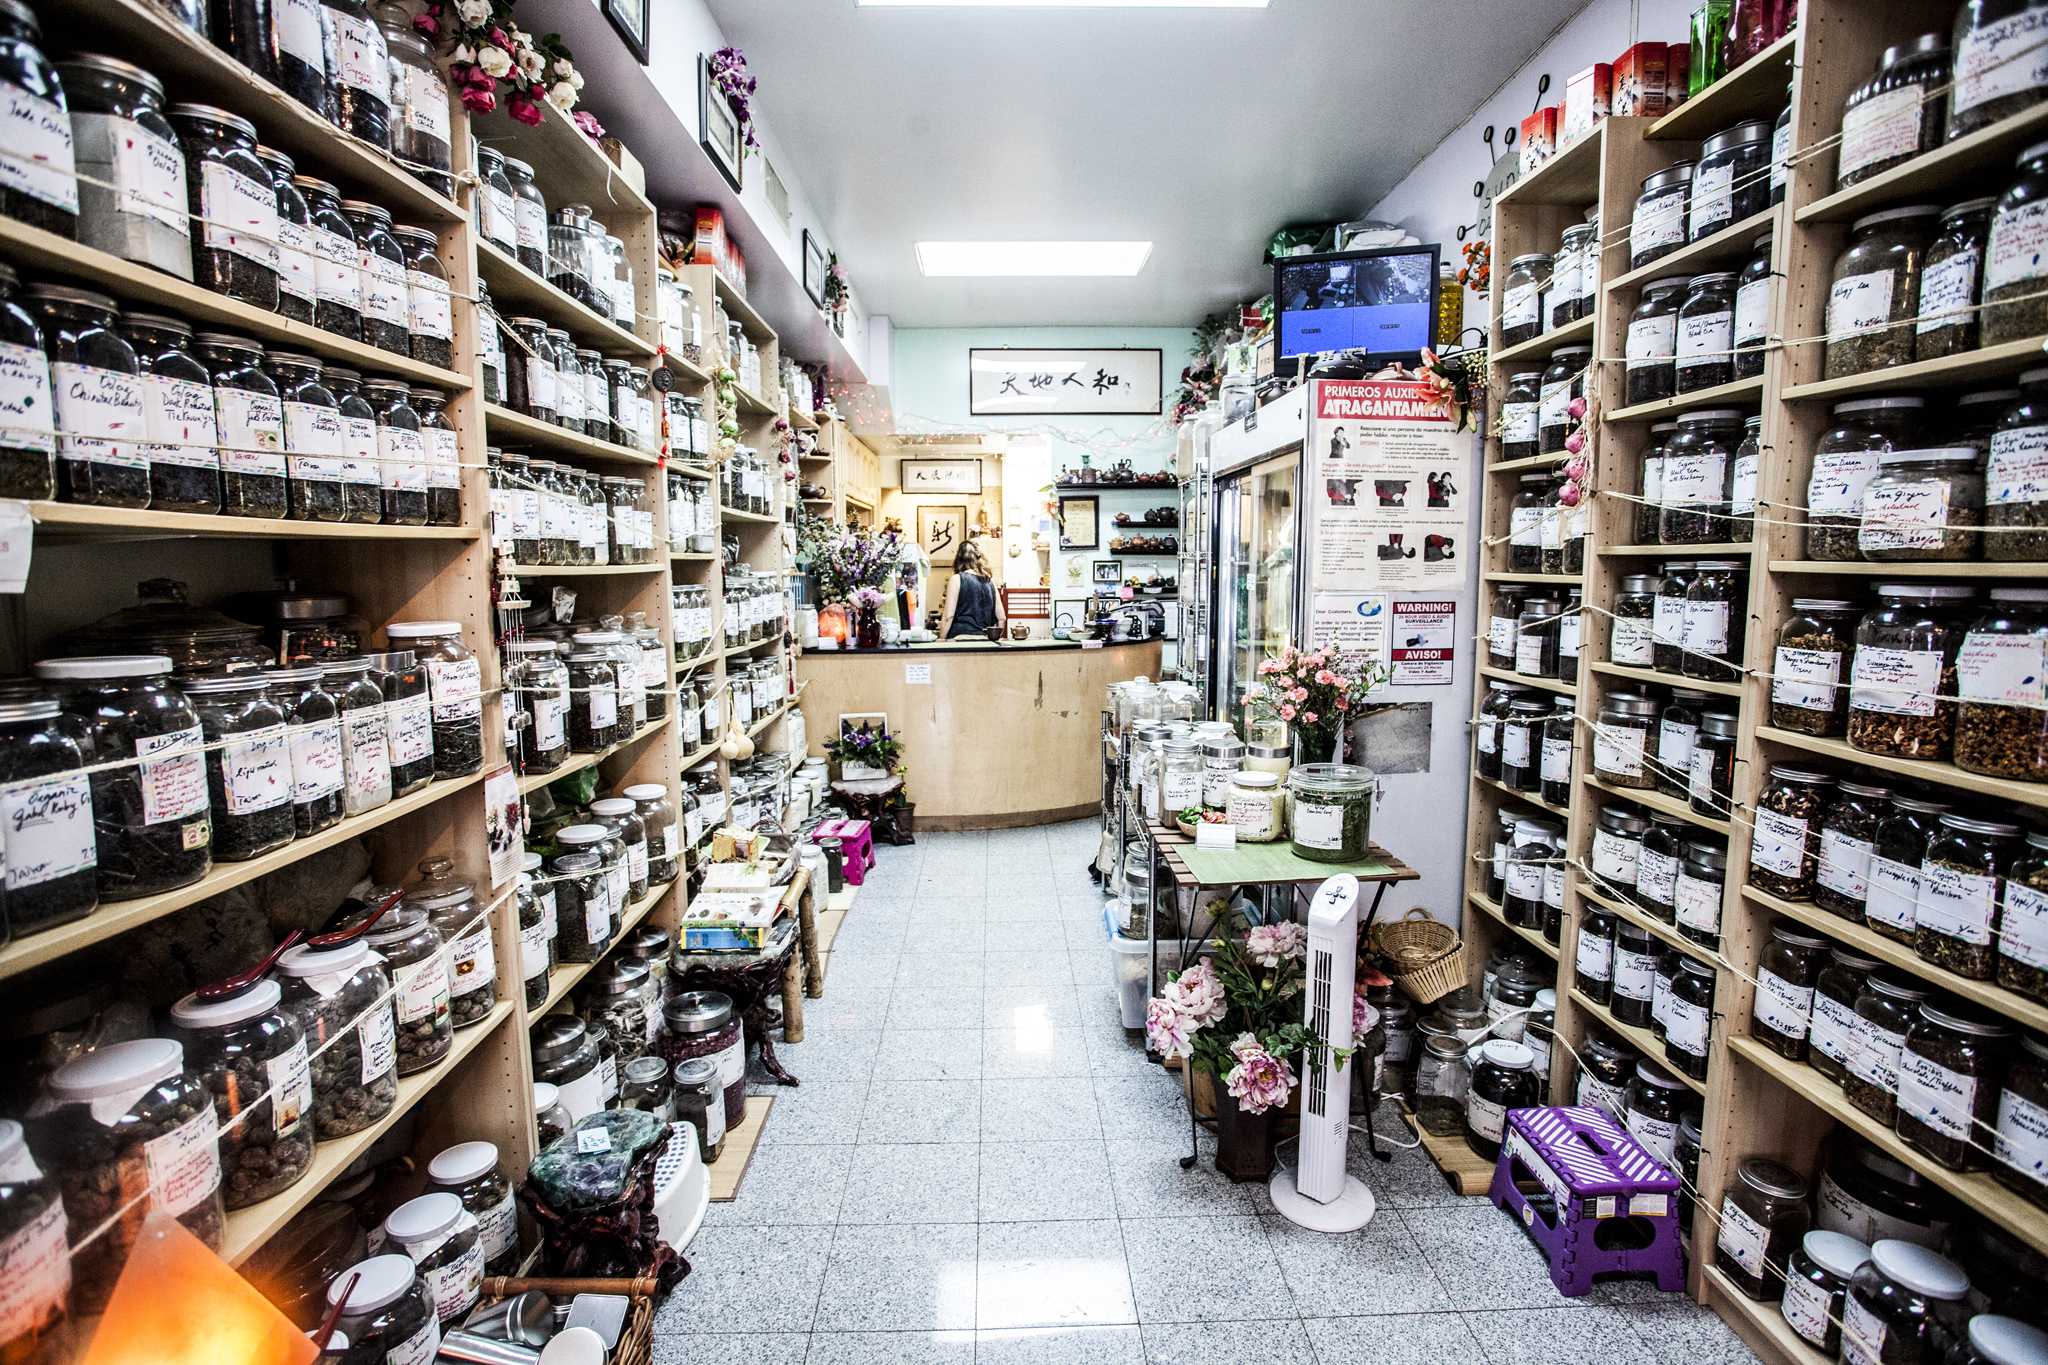 Shop for Asian tea remedies at Sun's Organic Garden